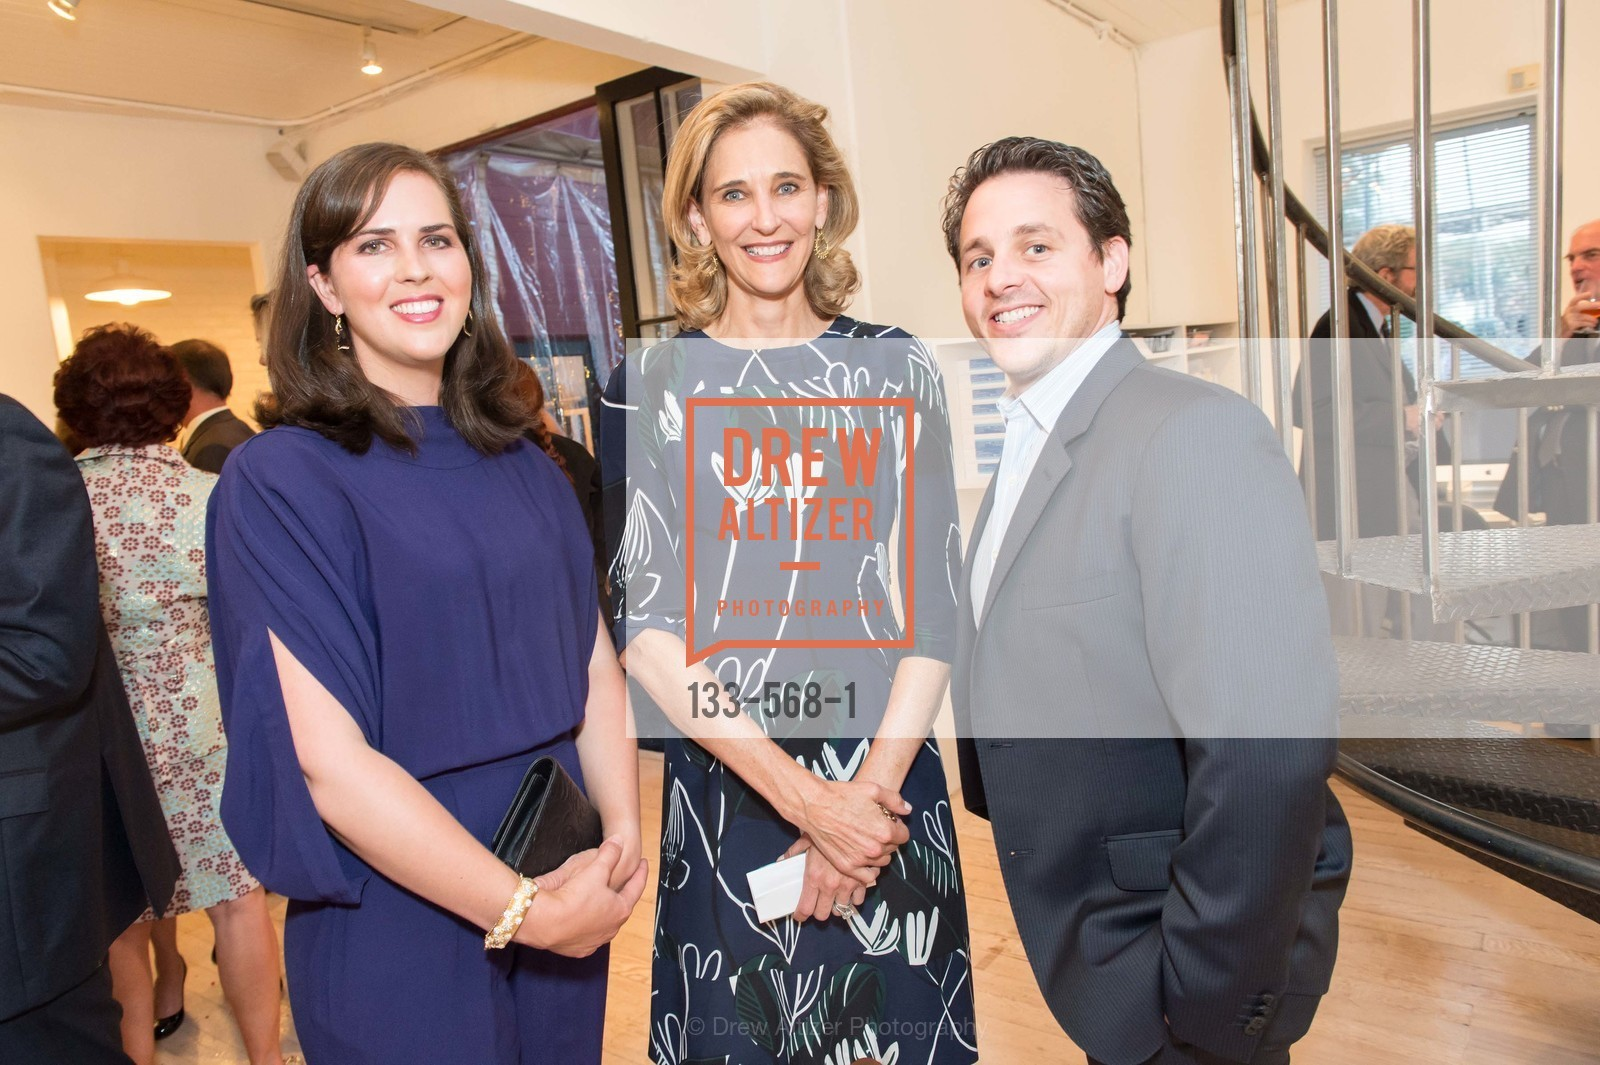 Jennifer Biederbeck, Josh Lippman, SOTHEBY'S  Hosts a Private Viewing of Highlights from the Collection of MRS. PAUL MELLON, US, September 17th, 2014,Drew Altizer, Drew Altizer Photography, full-service event agency, private events, San Francisco photographer, photographer California